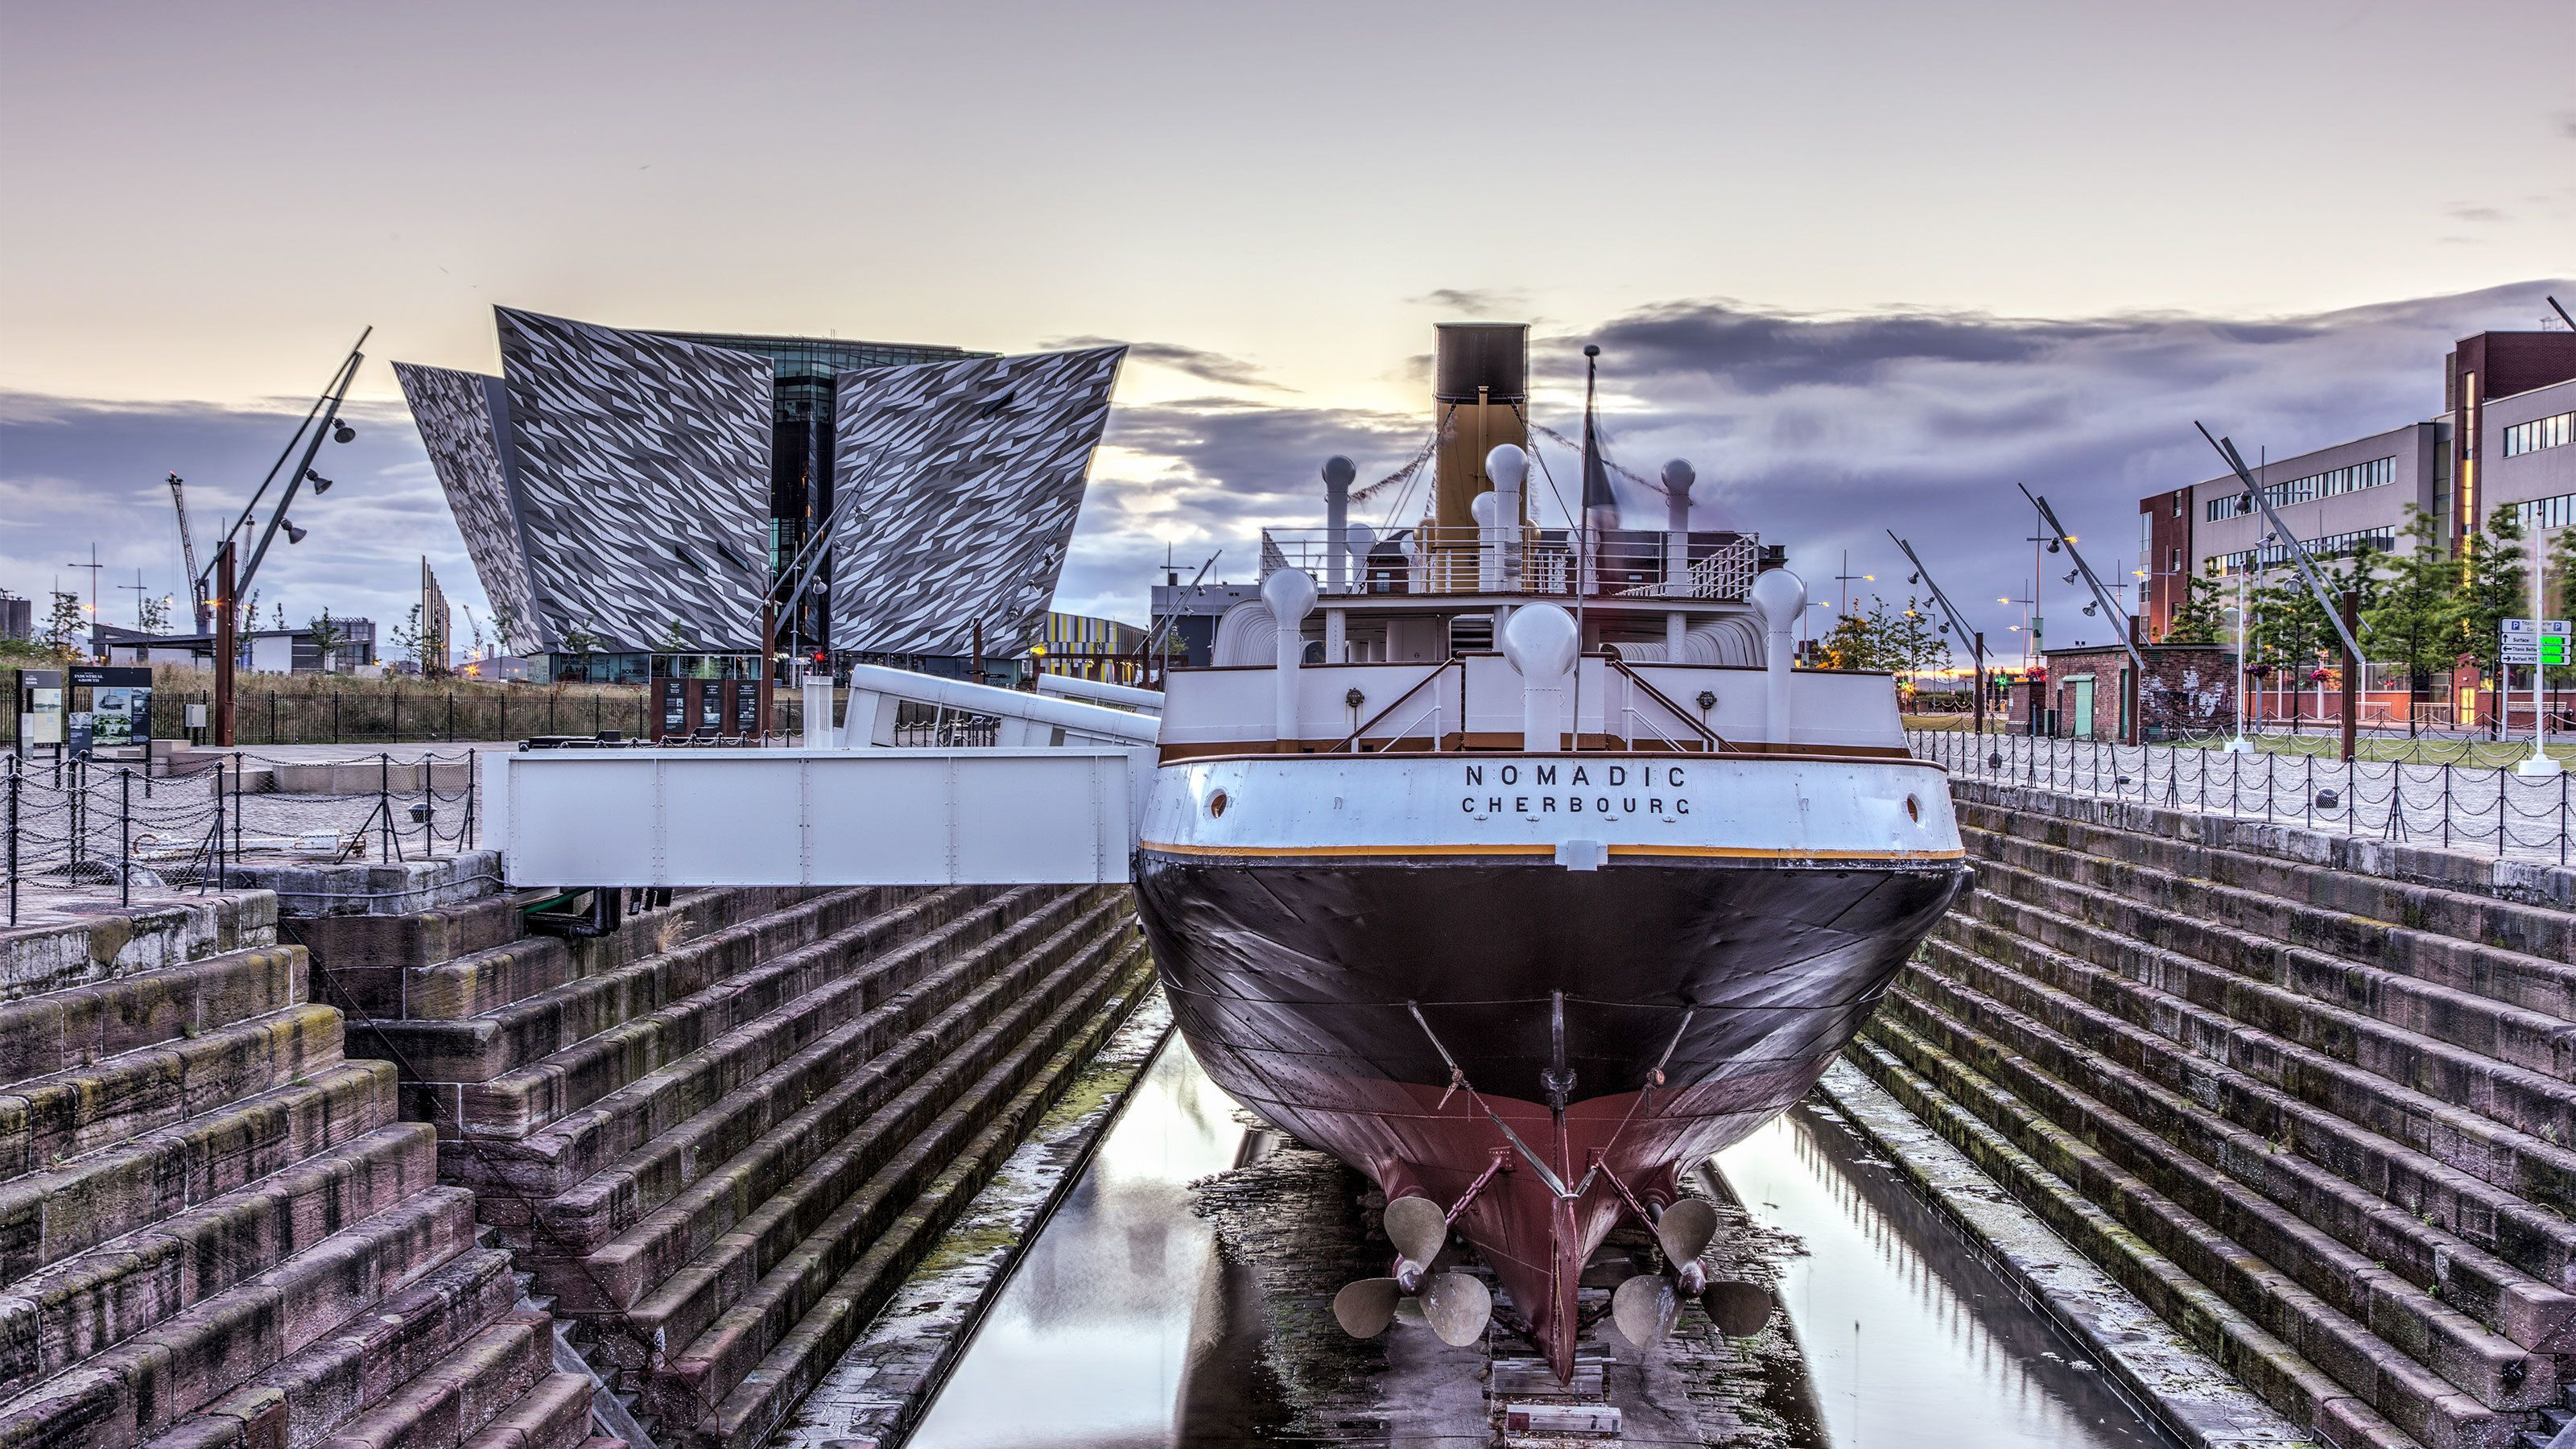 Boat on display in Ireland